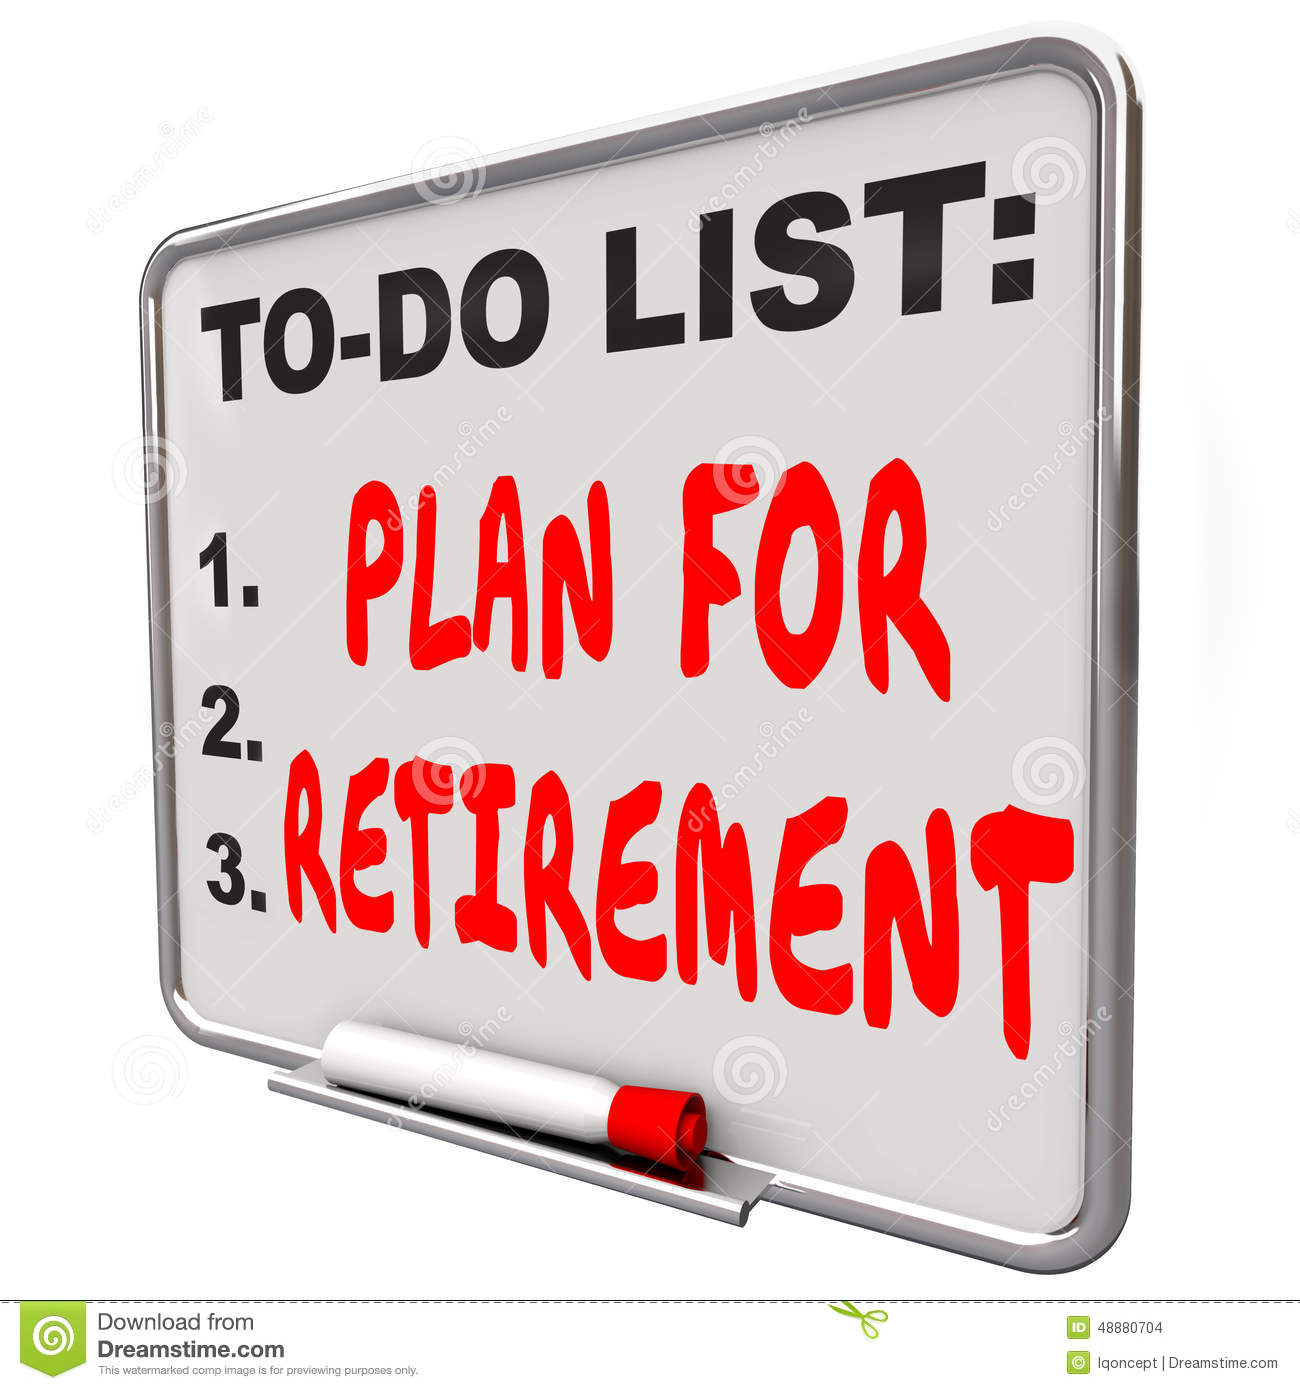 Plan Your Retirement To Do List Income Saving Golden Years Messa.